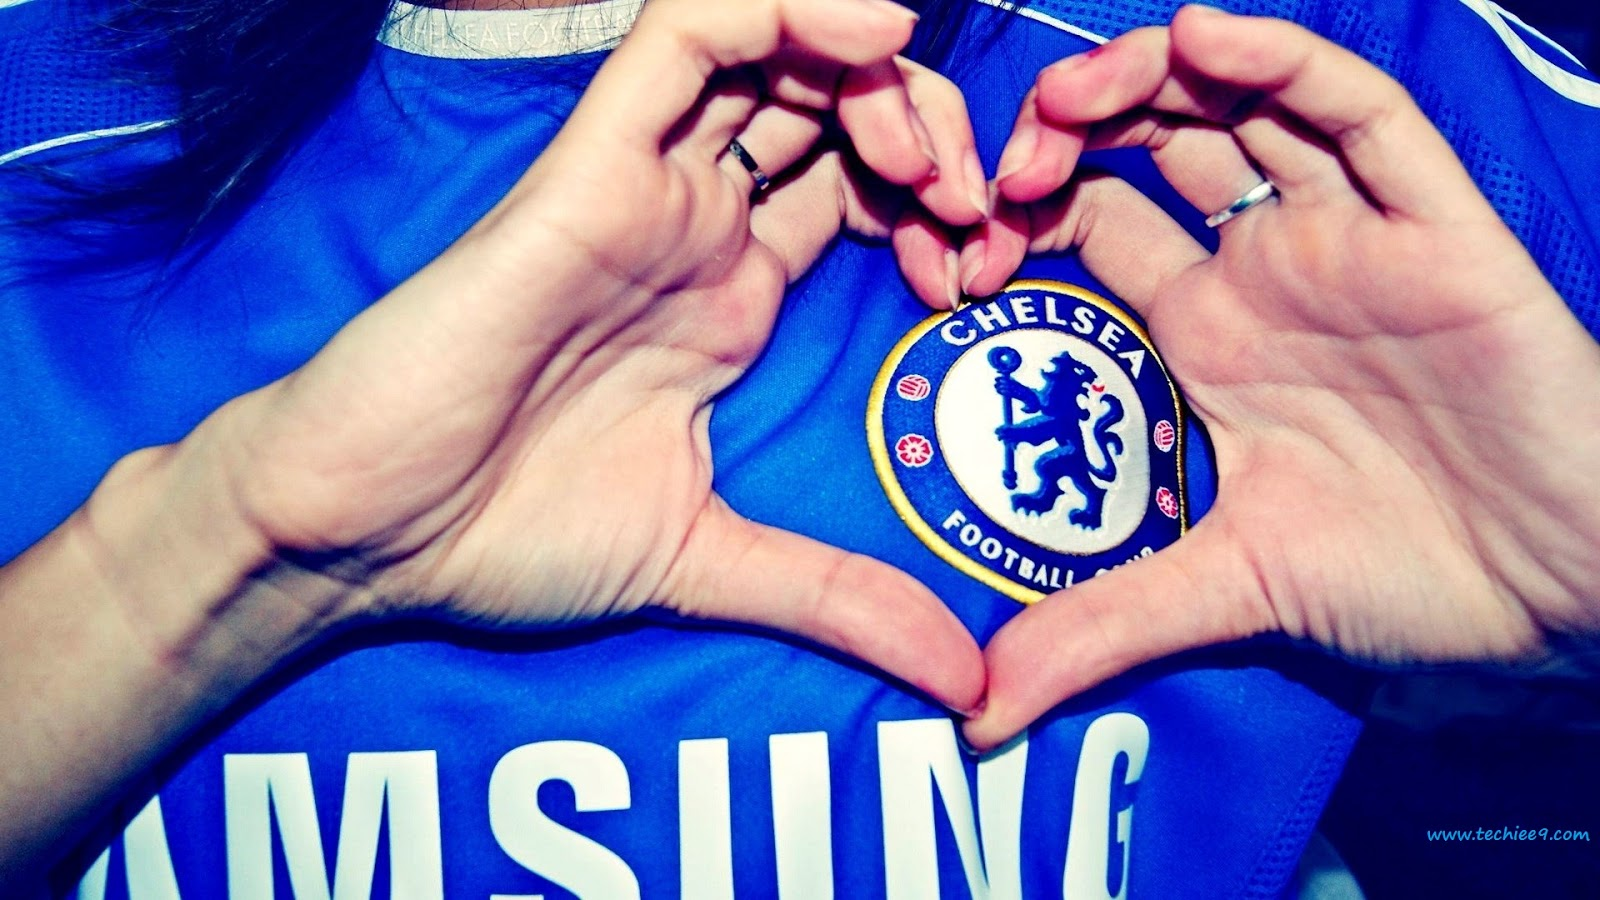 Love chelsea logo full hd 1920x1080 widescreen wallpaper hd download free chelsea football clubfc theme for windows 87 voltagebd Image collections